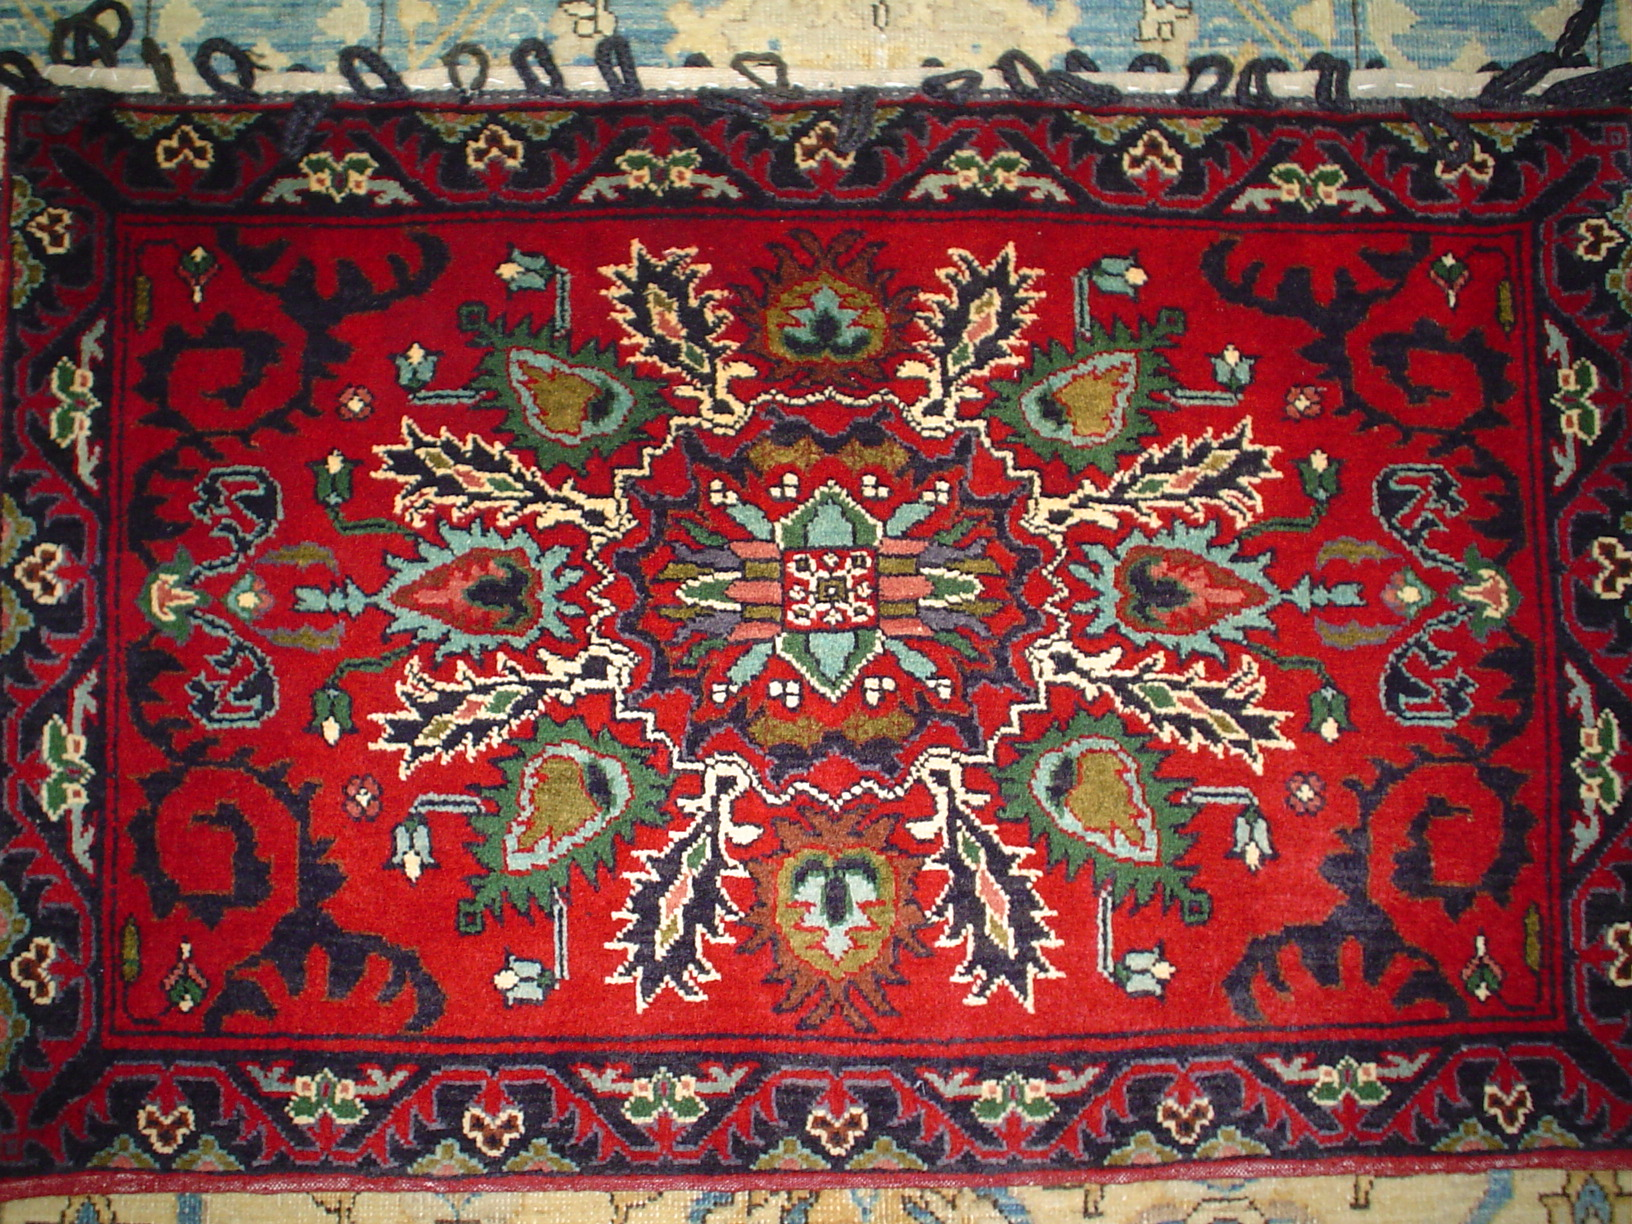 Beautiful large hand woven rug pillow. Old Tabriz design, very tightly woven. Available for sale.